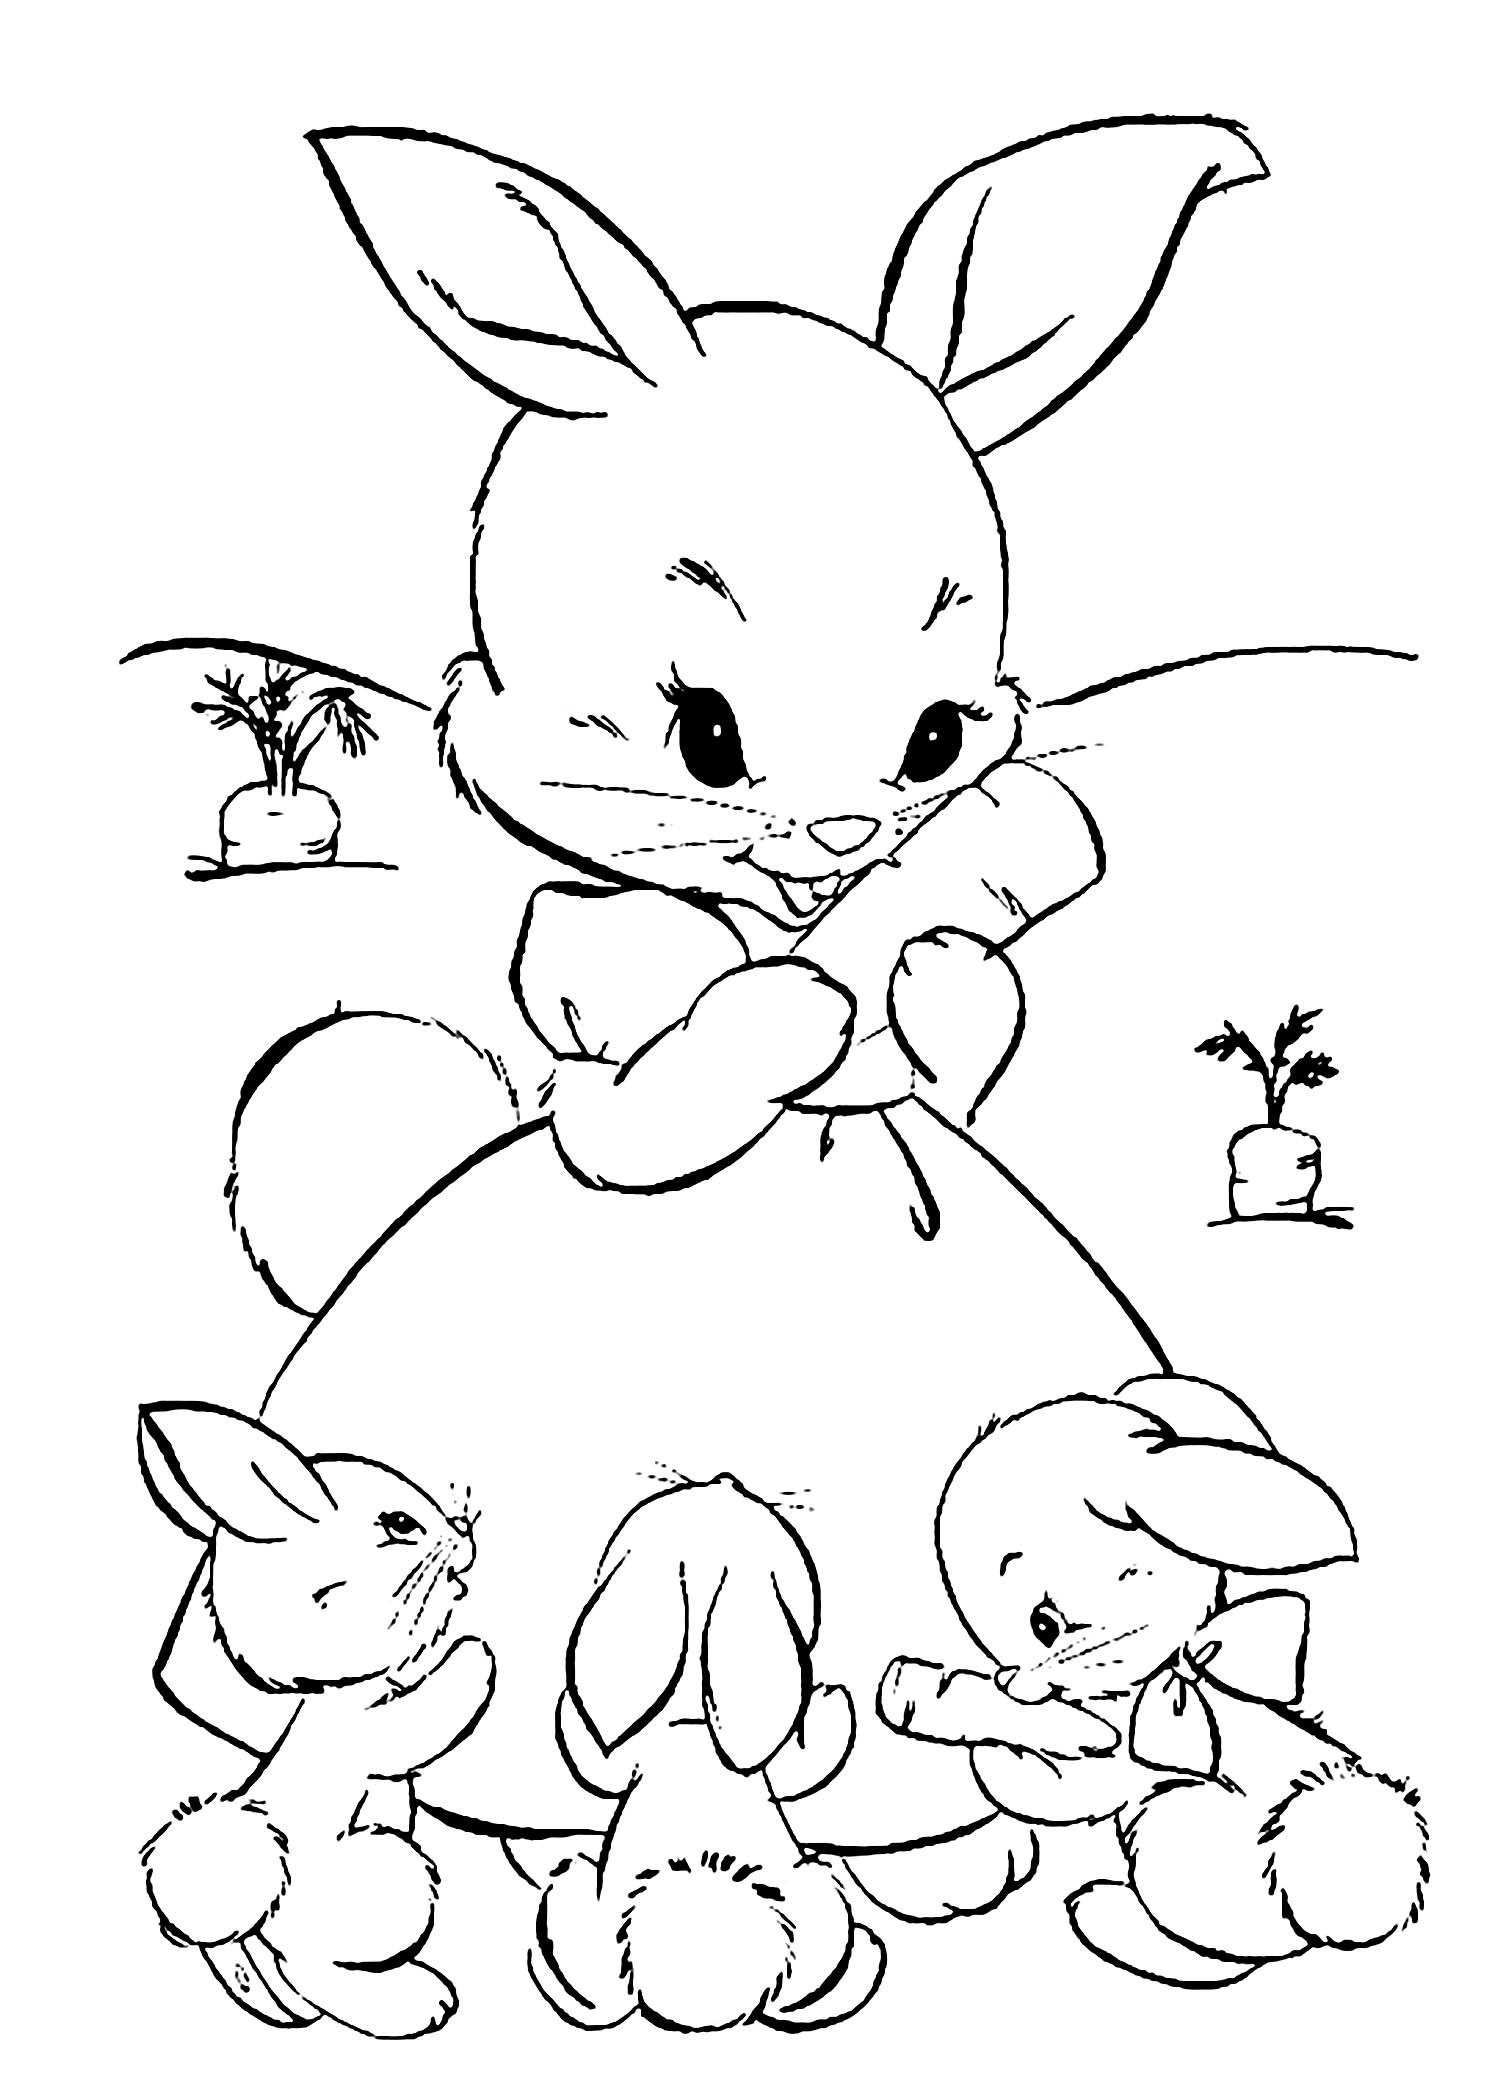 bunny coloring book rabbit to color for children rabbit kids coloring pages coloring bunny book